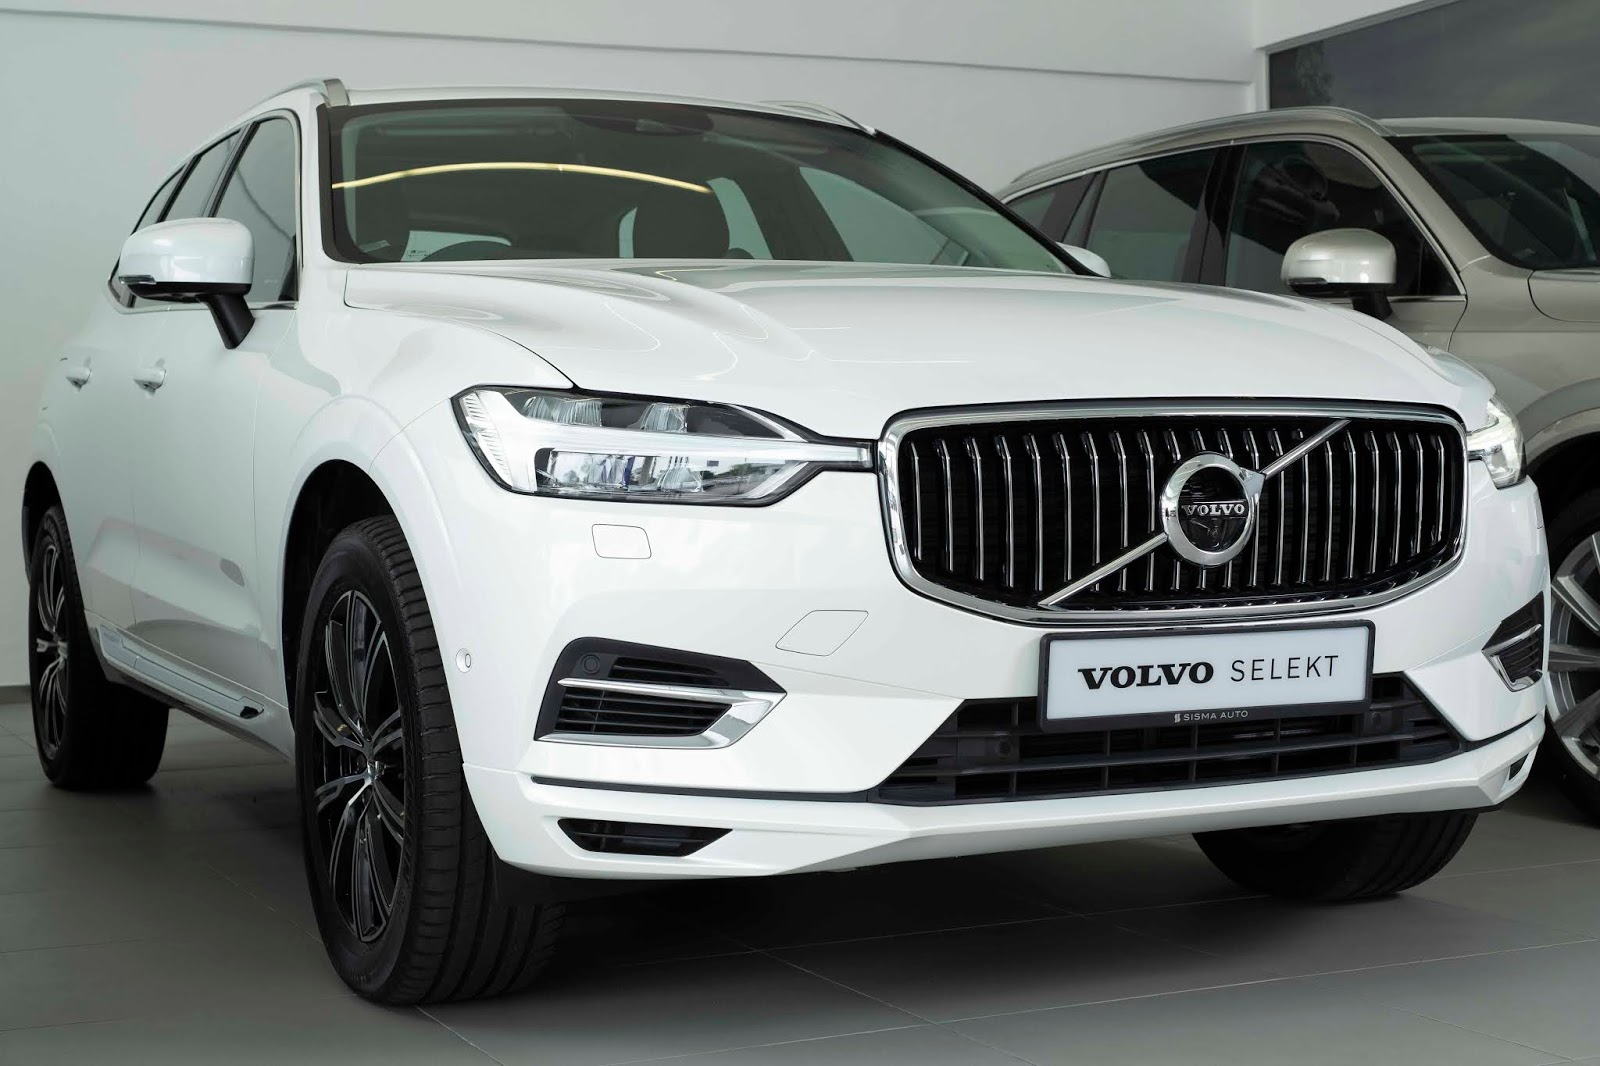 Experience Swedish Excellence the Smart Way with Volvo SELEKT